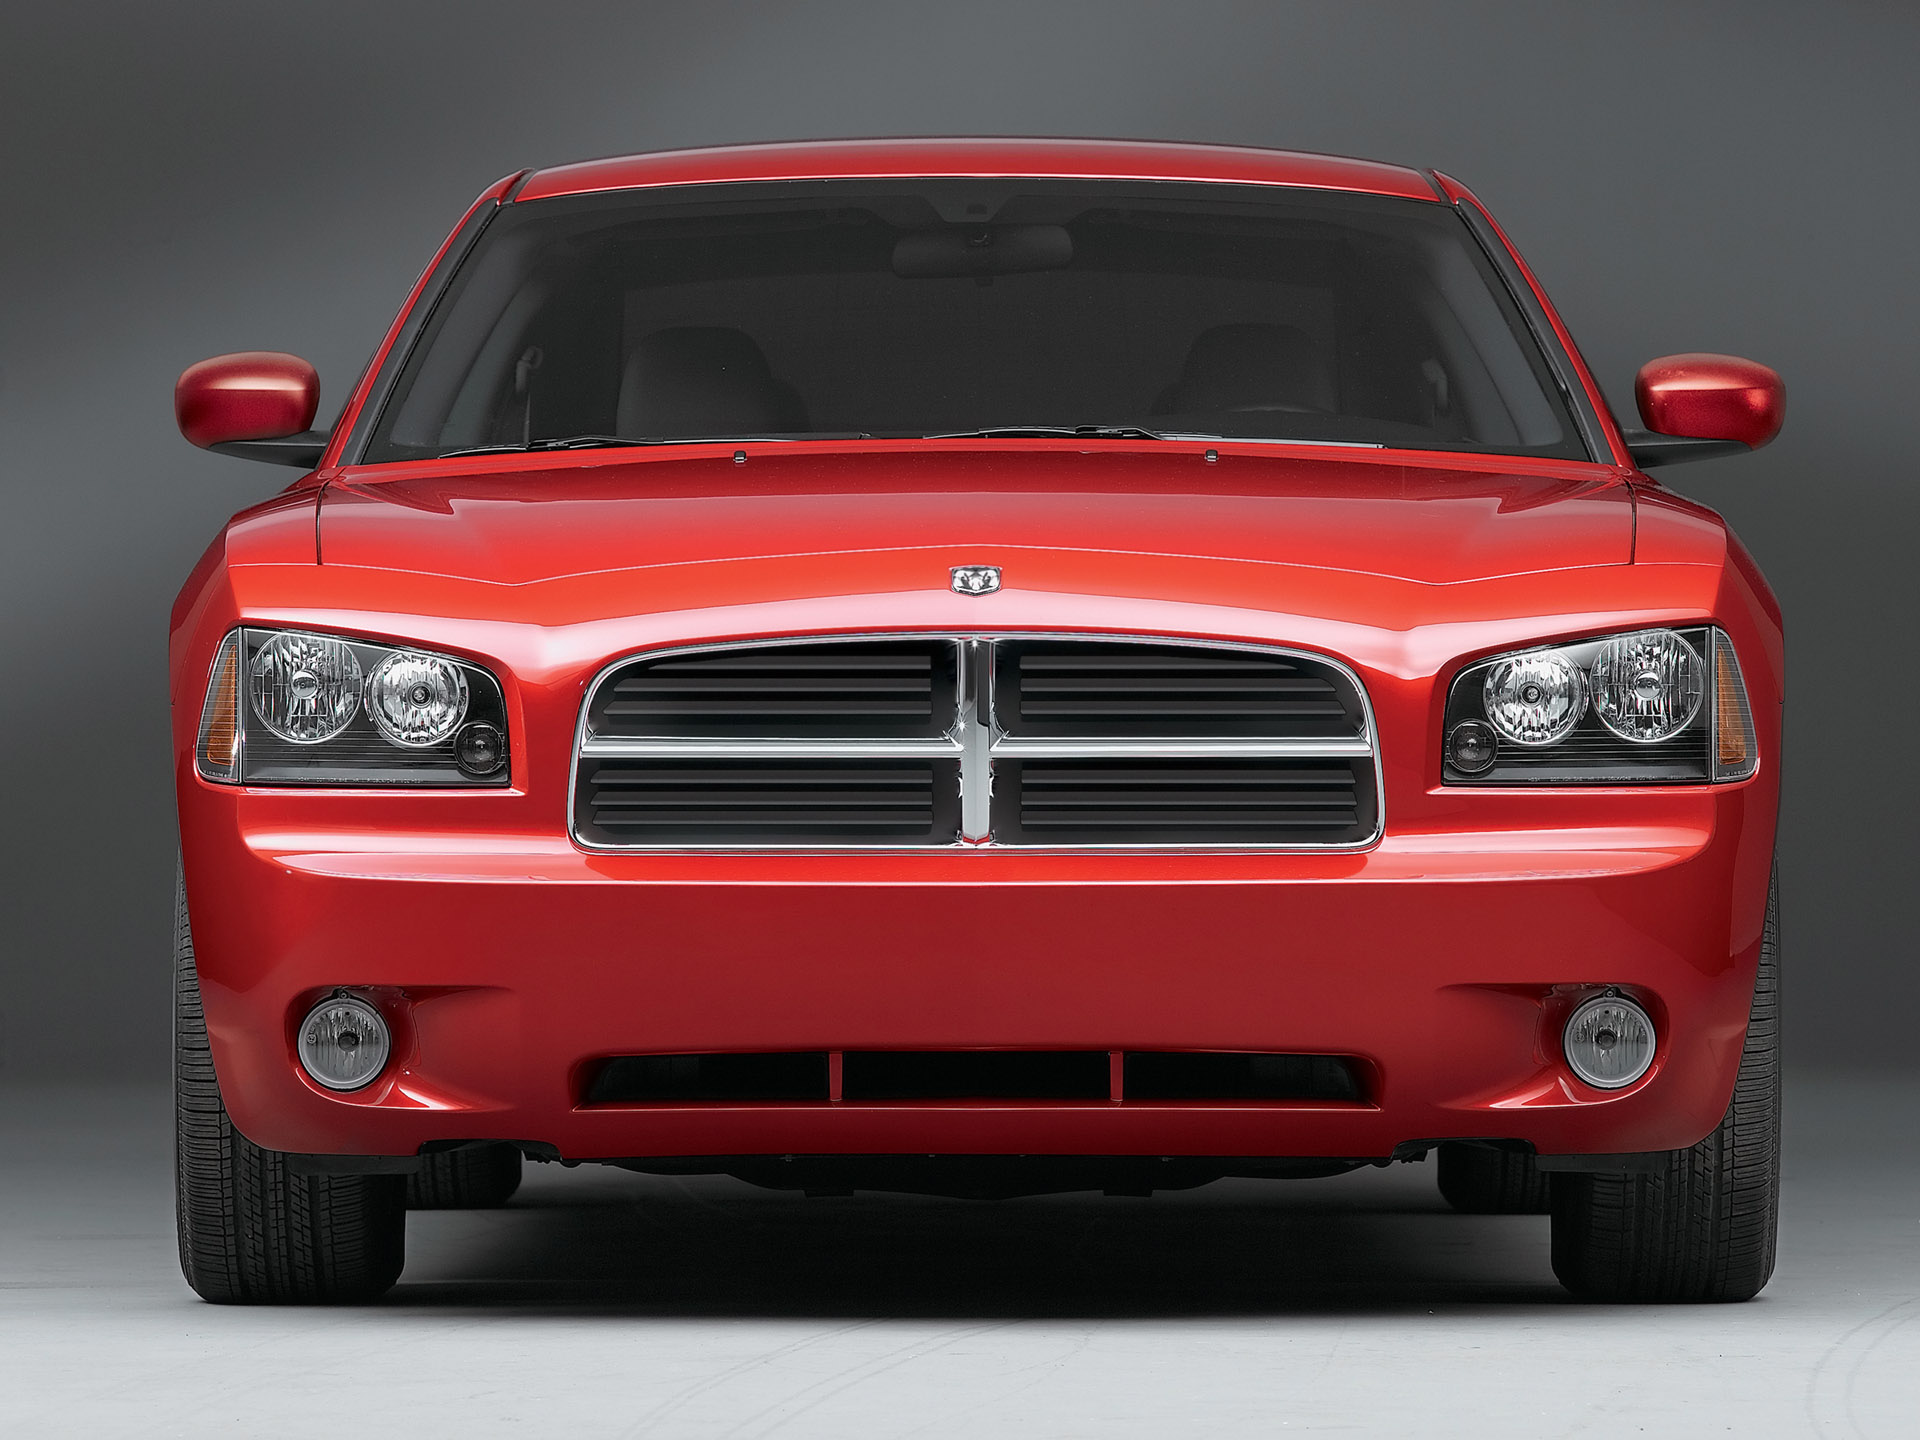 2006 Dodge Charger #16